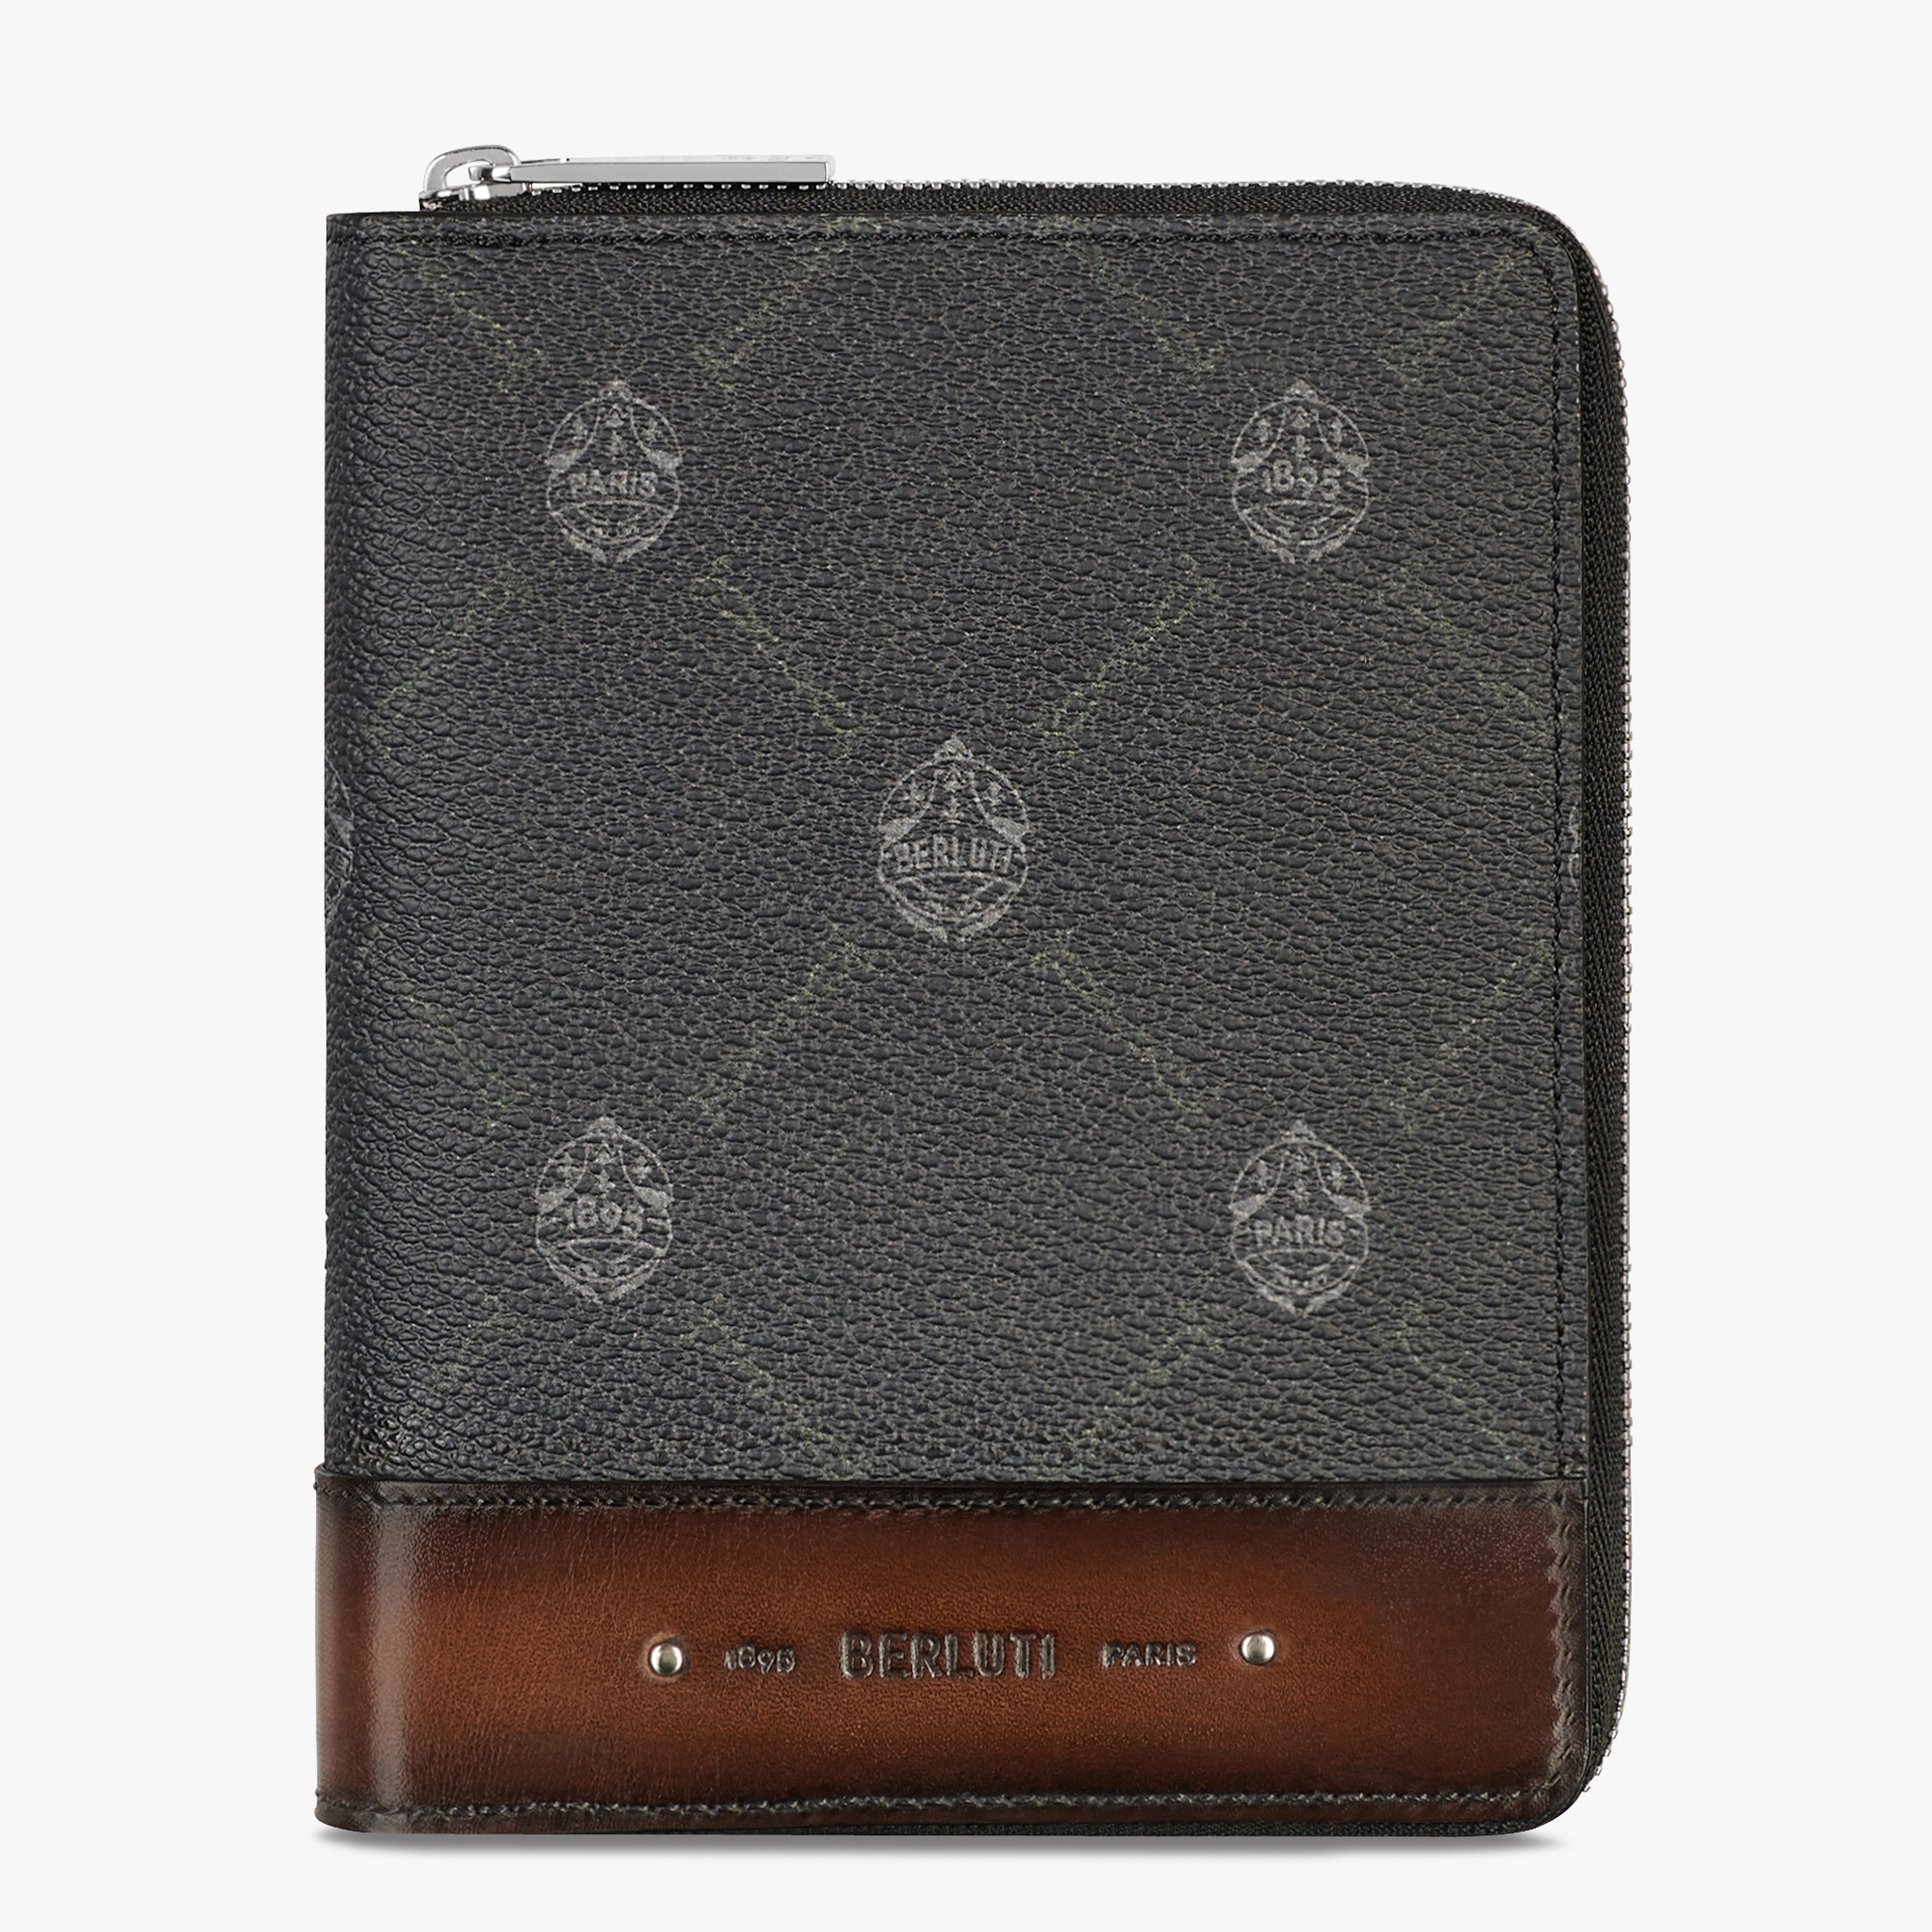 Expédition Canvas And Leather Zipped Wallet, BLACK + TDM INTENSO, hi-res